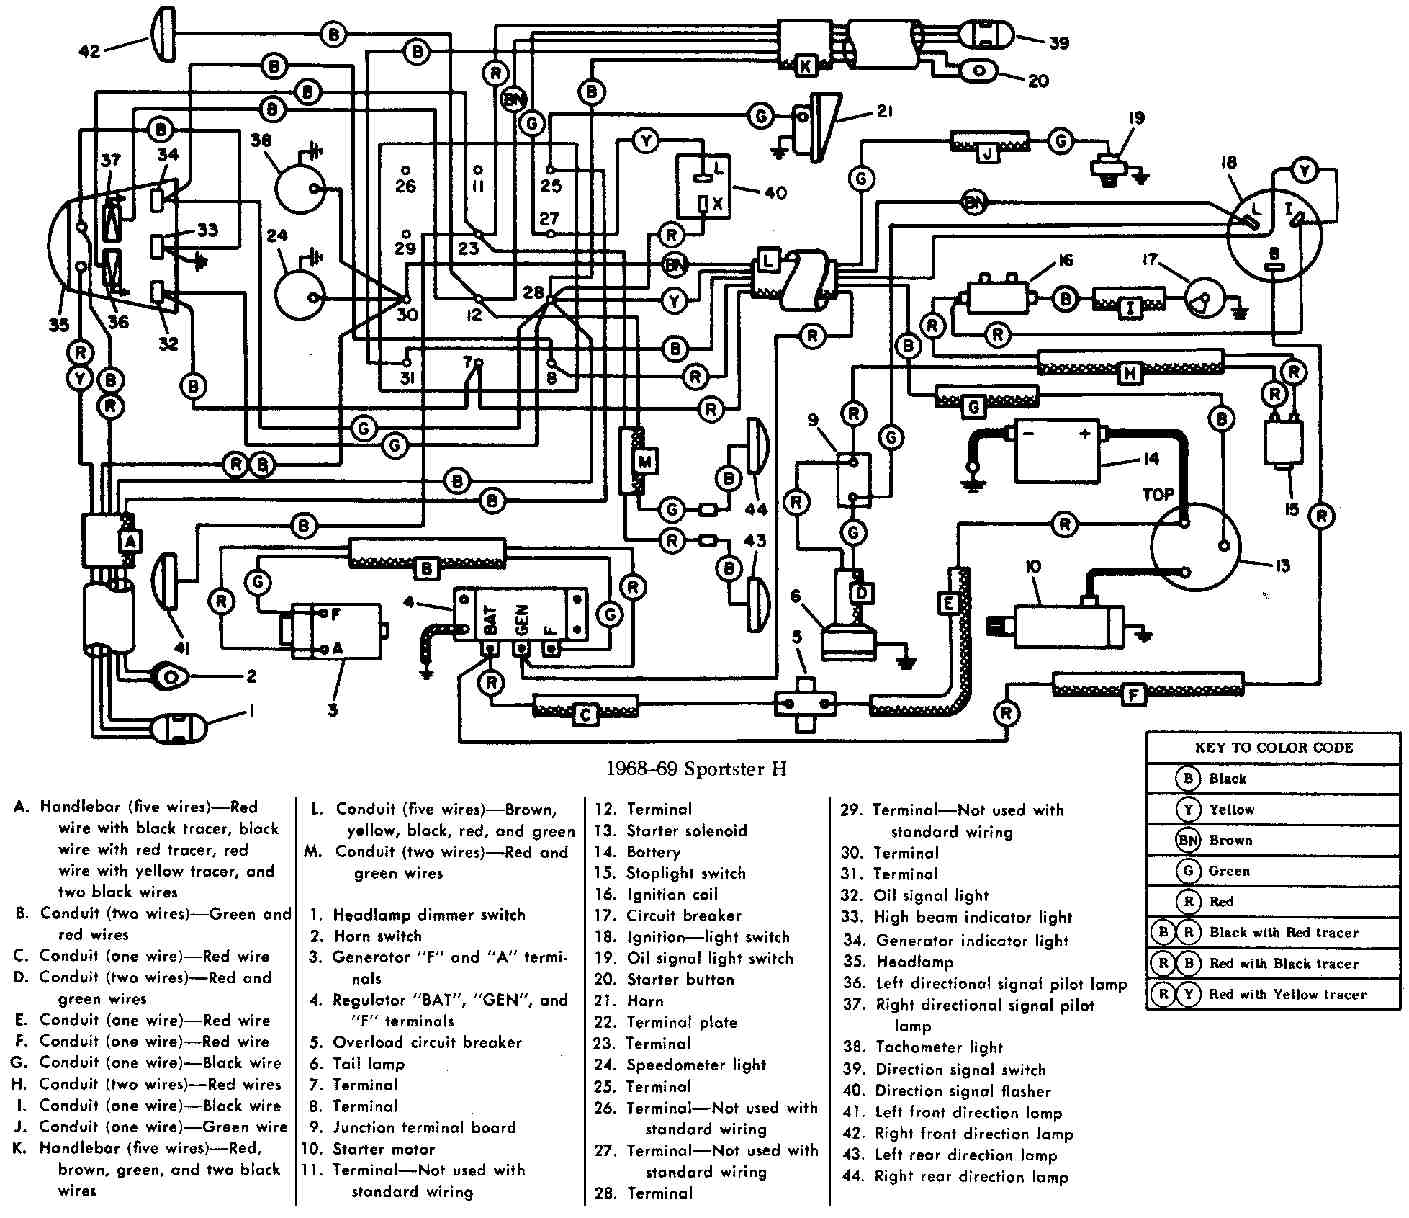 1990 Ac Wiring Diagram - Free Wiring Diagram For You •  Chevy Odometer Wiring Diagram on 1988 chevy engine swap, 1988 chevy electrical system, 1988 chevy coil wiring, 1988 chevy firing order, 1988 chevy headlights, 88 chevy wire diagram, 1988 chevy trailer plug, 1988 chevy speedometer, 1988 chevy 454 engine, 1988 chevy motor, 1988 chevy parts diagram, 1988 chevy radio, 1988 chevy horn, 1988 chevy engine wiring, 1988 chevy steering, 1988 chevy wheels, 1988 chevy distributor, 1988 chevy engine diagram, 1988 chevy fuel pump, 1988 chevy s10 blazer wiring,